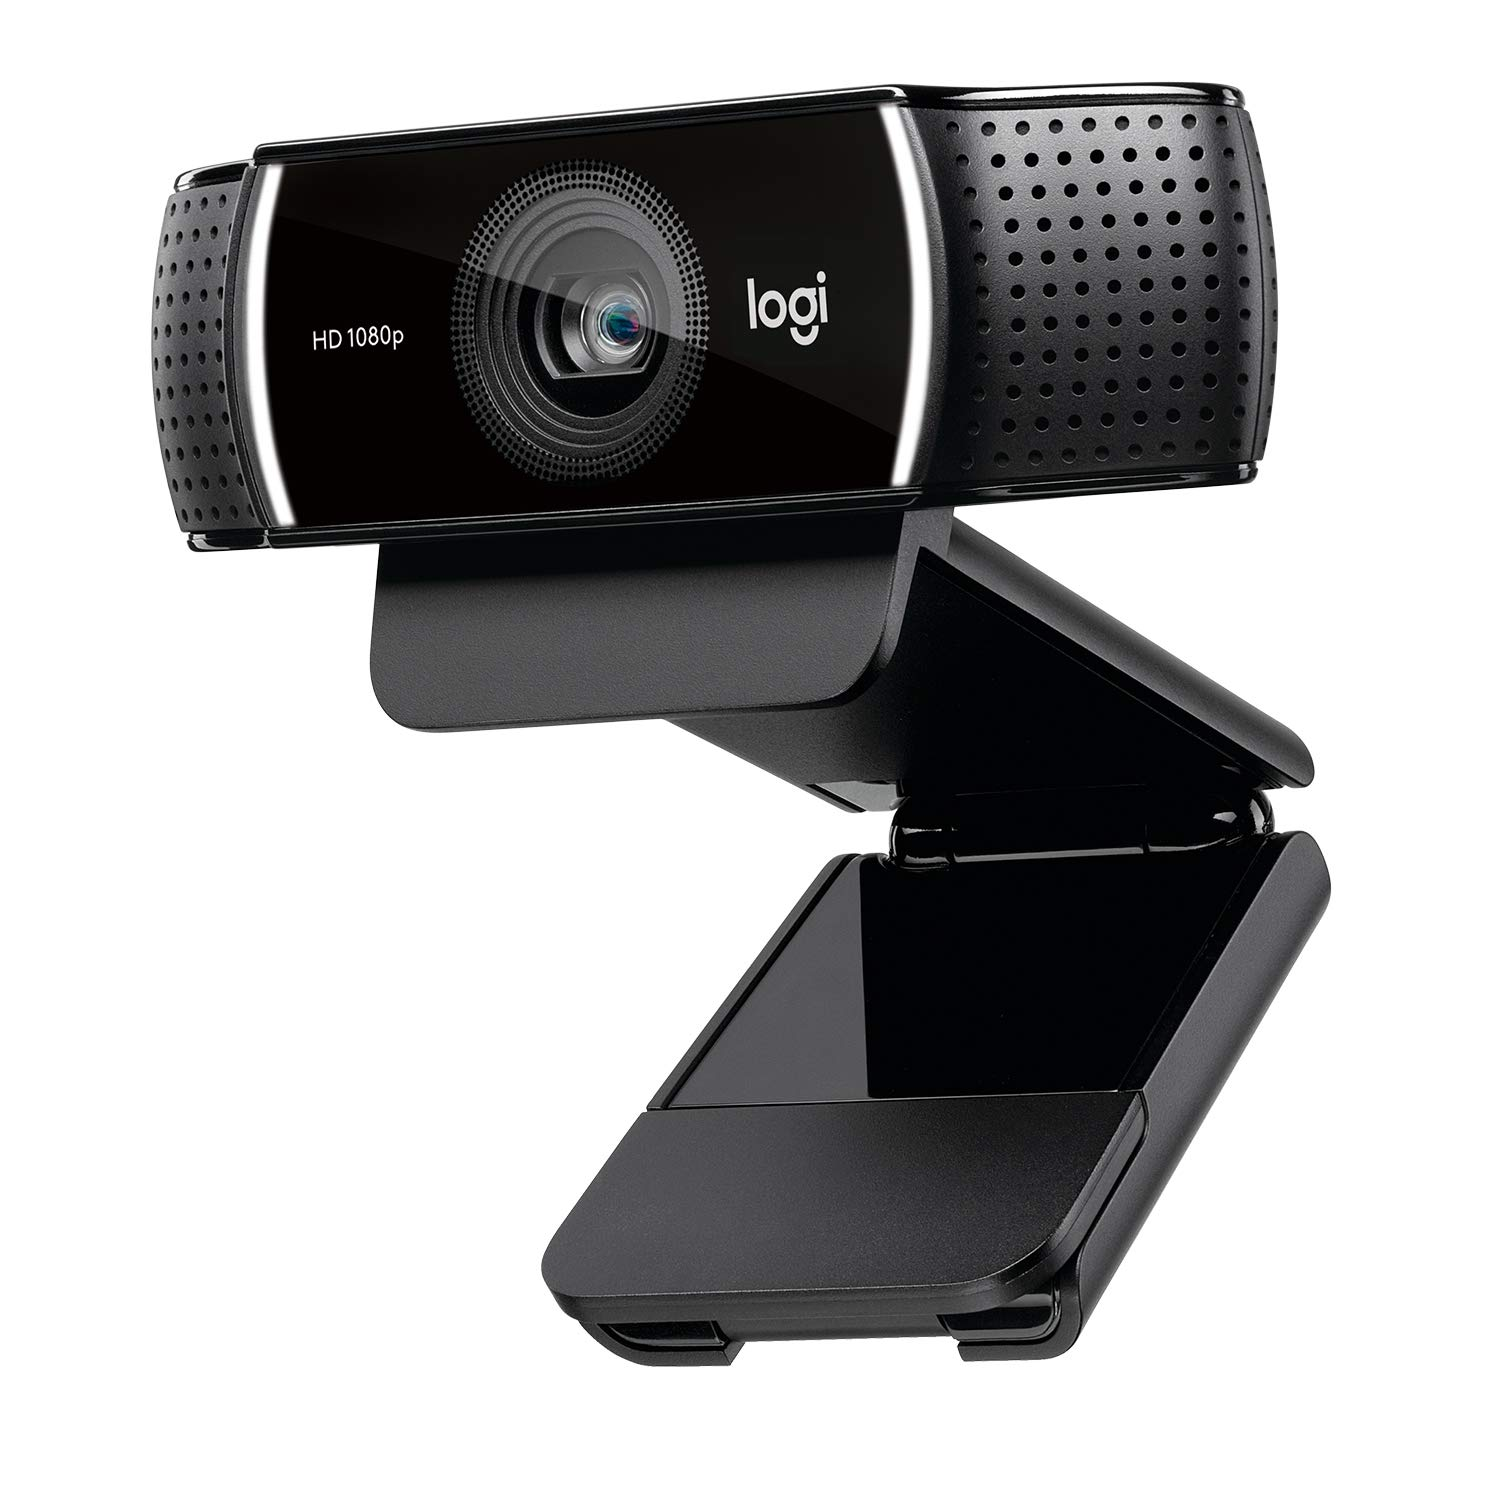 Logitech C922x Pro Stream Webcam – Full 1080p HD Camera – Background Replacement Technology for YouTube or Twitch Streaming by Logitech (Image #2)